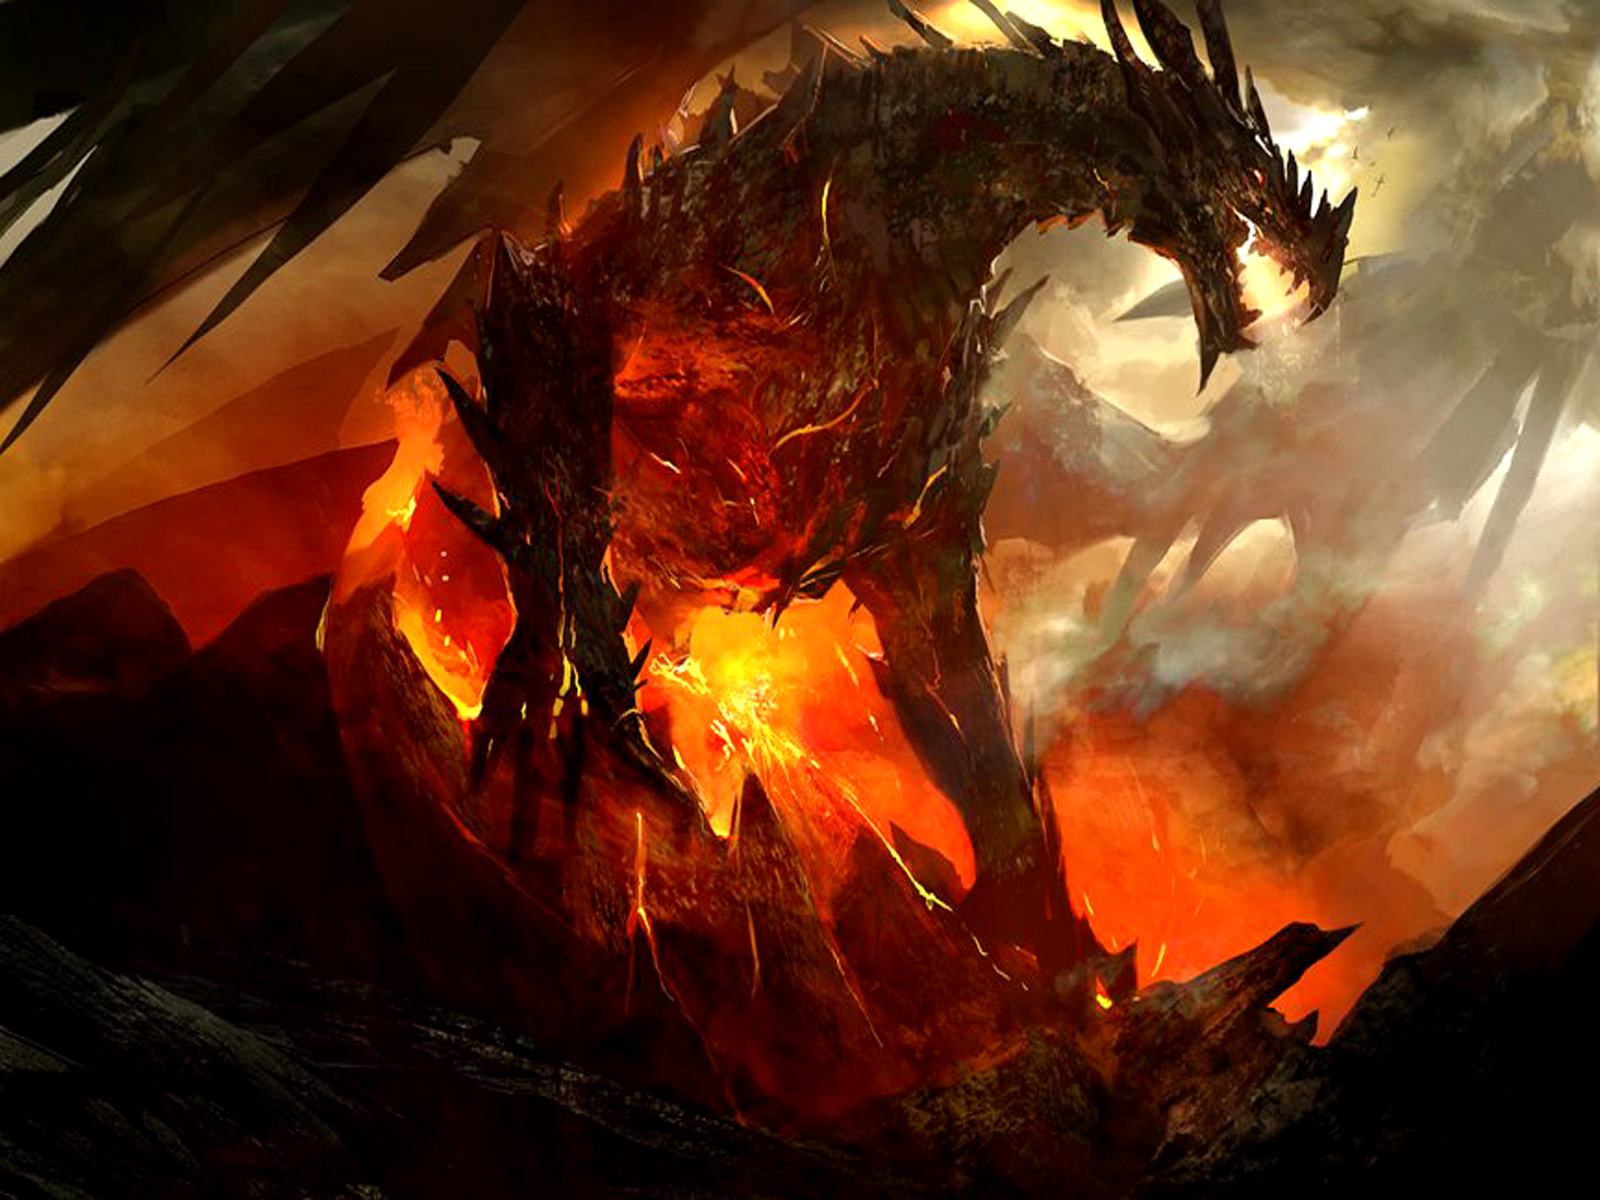 dragon widescreen wallpaper for background download 1600x1200